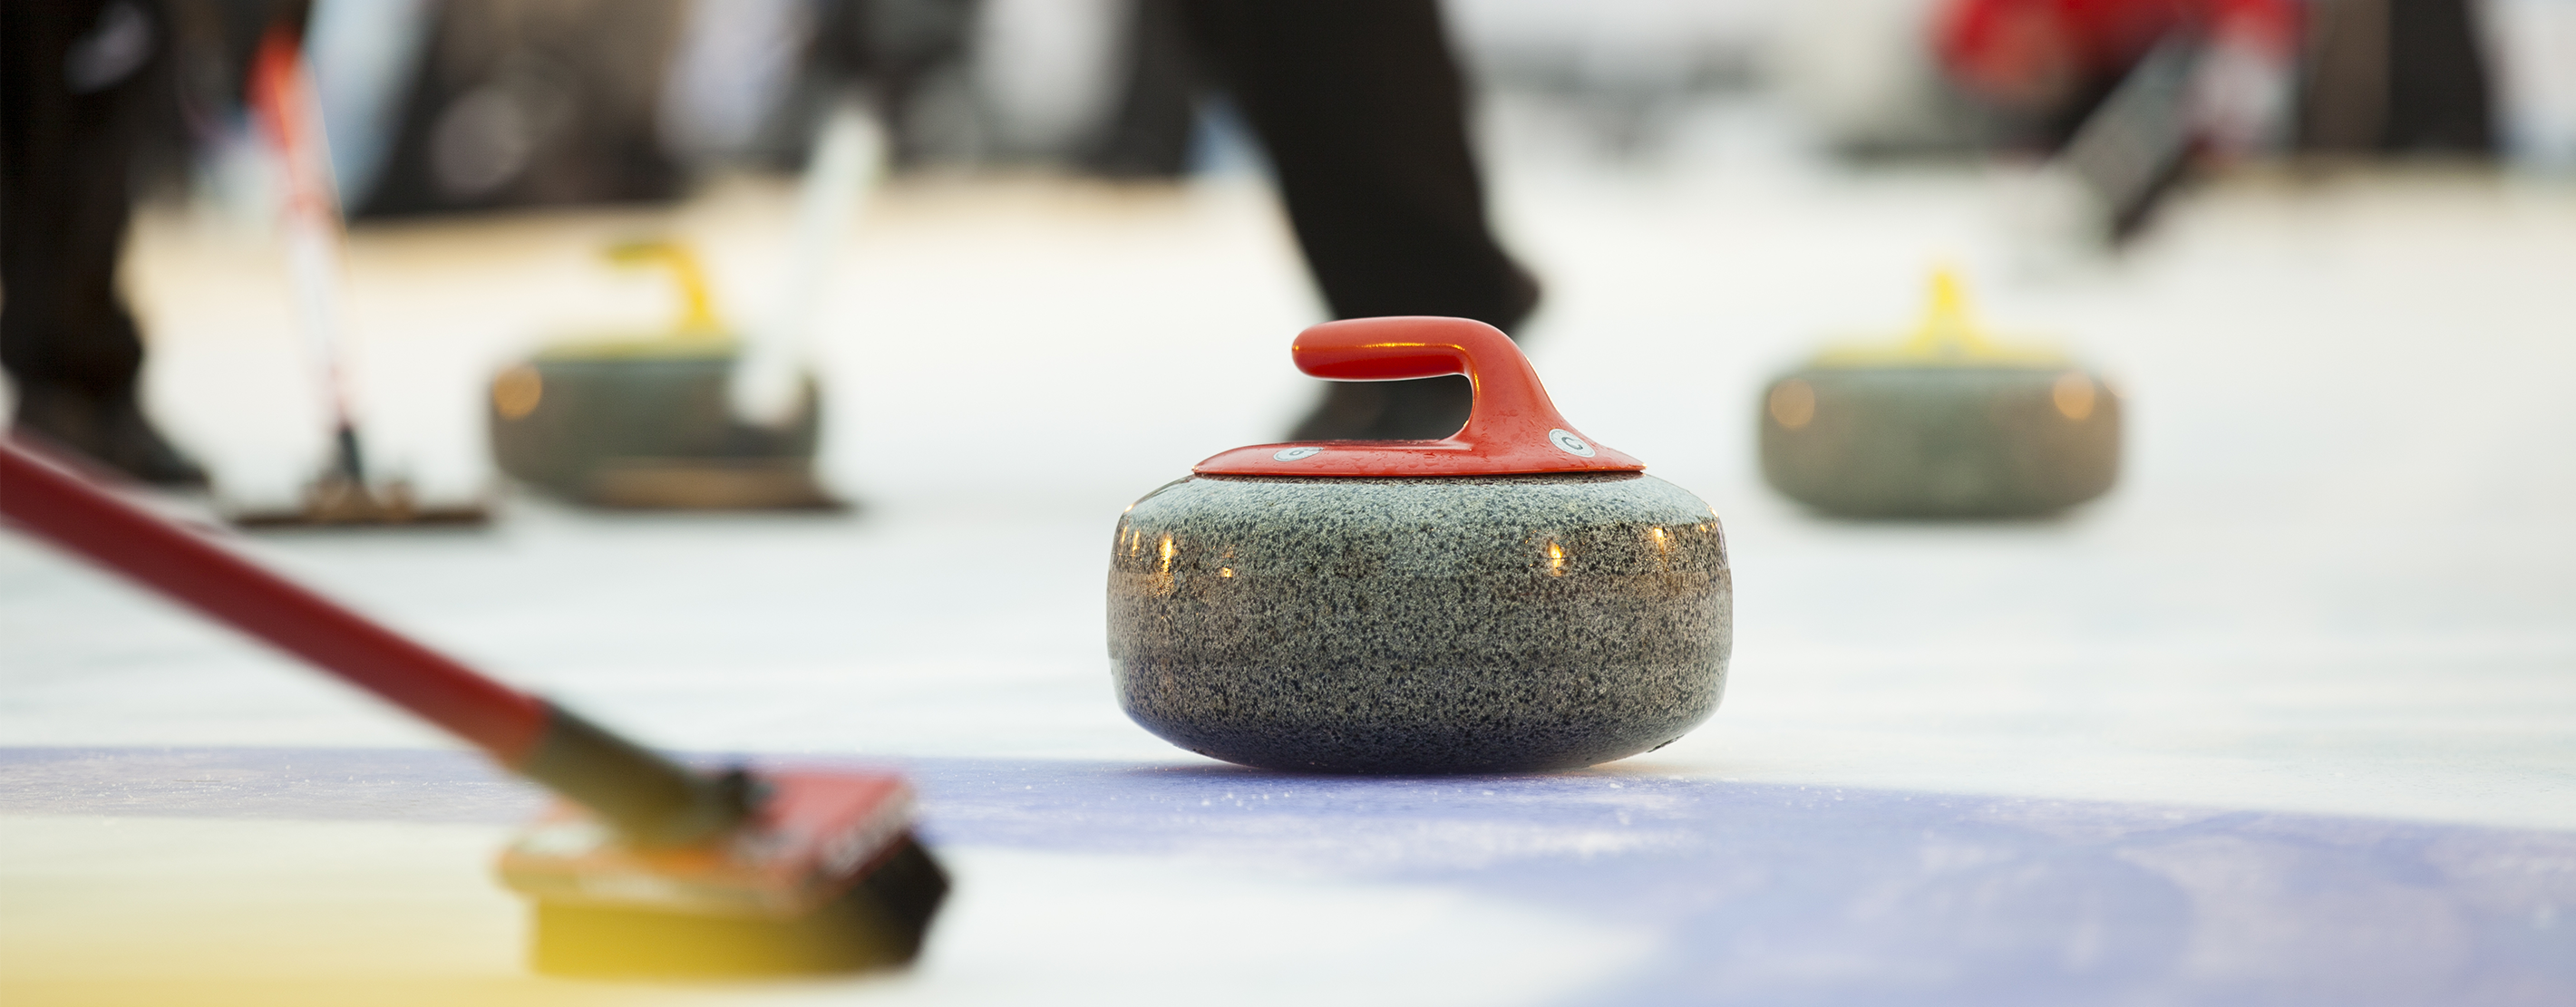 Curling Ice With Curlers Playing